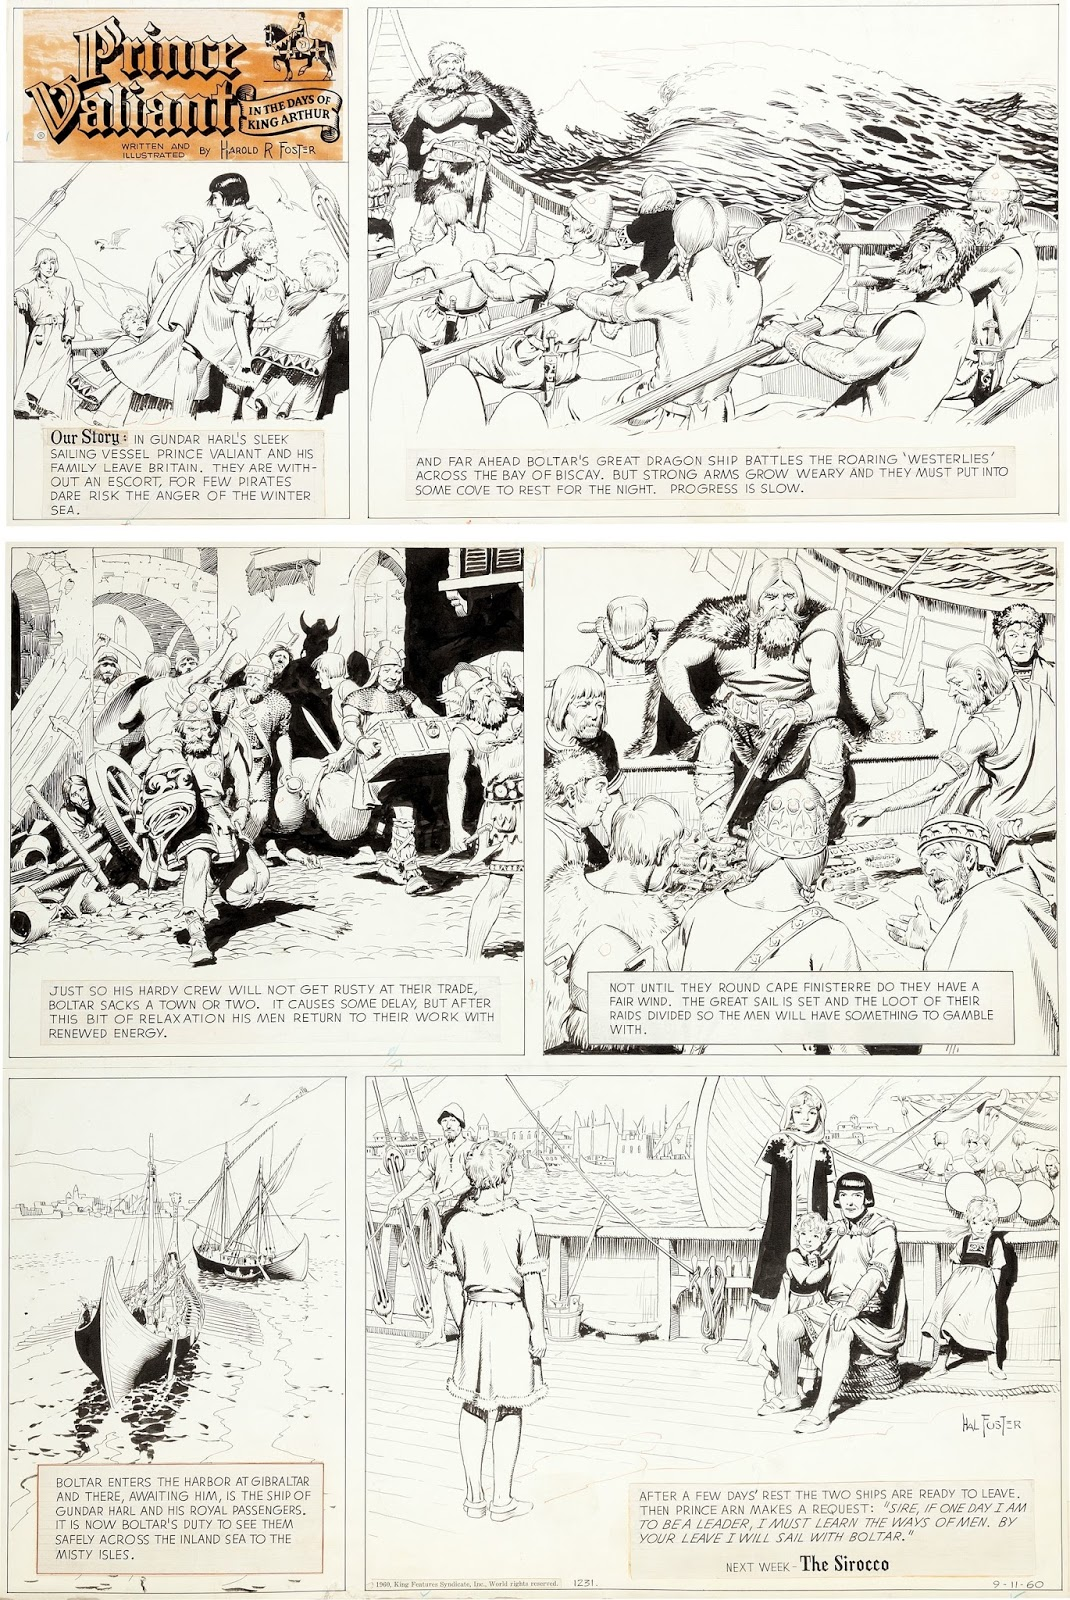 PRINCE VALIANT by Hal Foster Vol.1-10 Hardcover Books Published by Fantagraphics